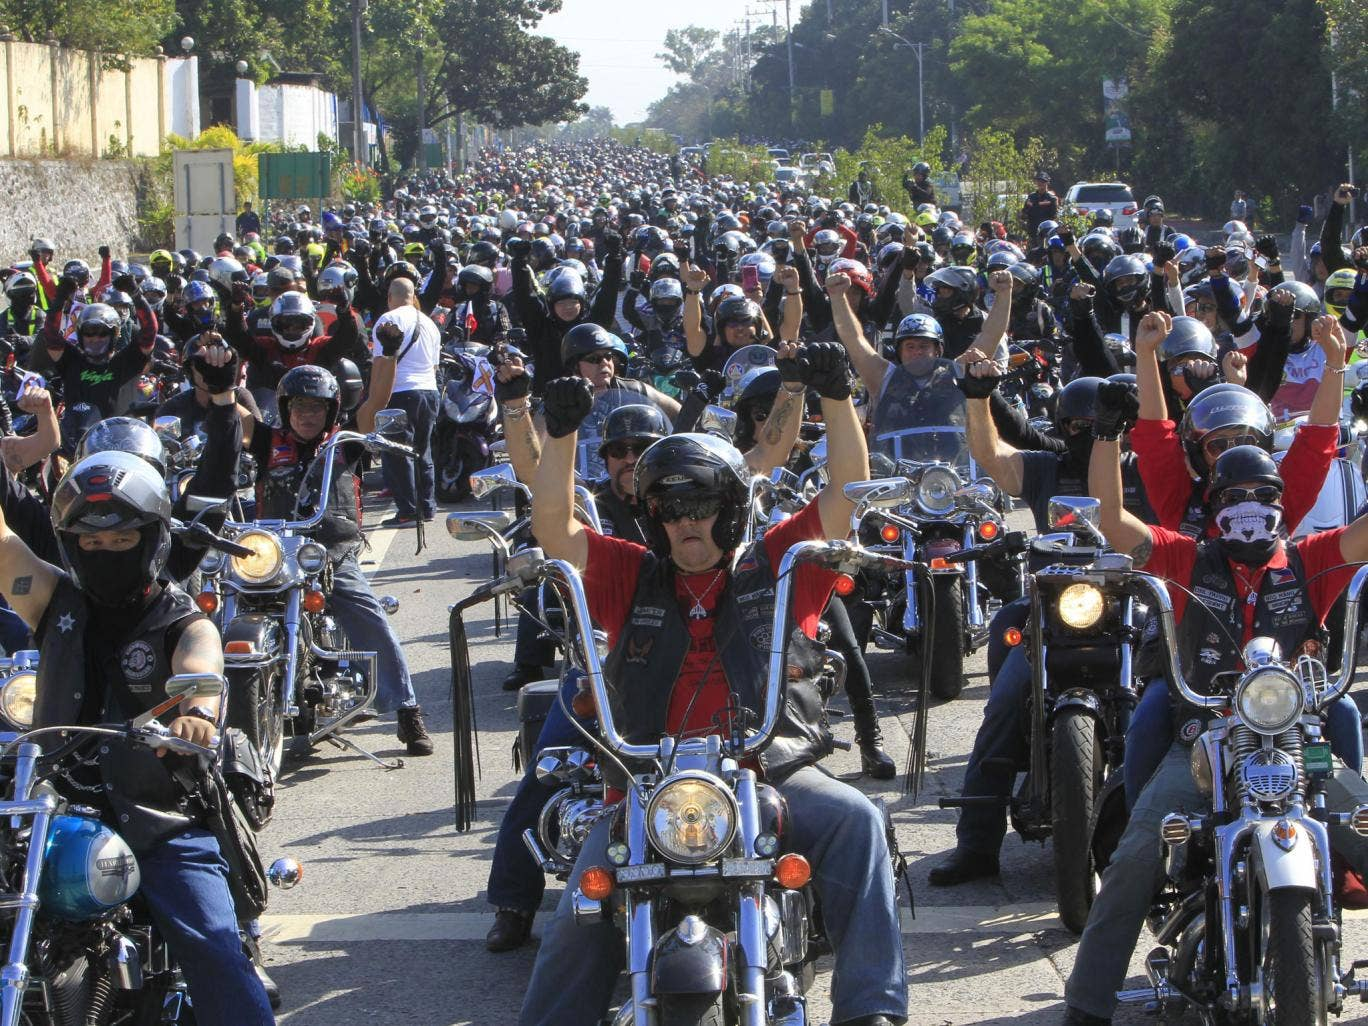 Over a thousand protesters drove gathered to show their dissatisfaction with Manila administrator's decisions